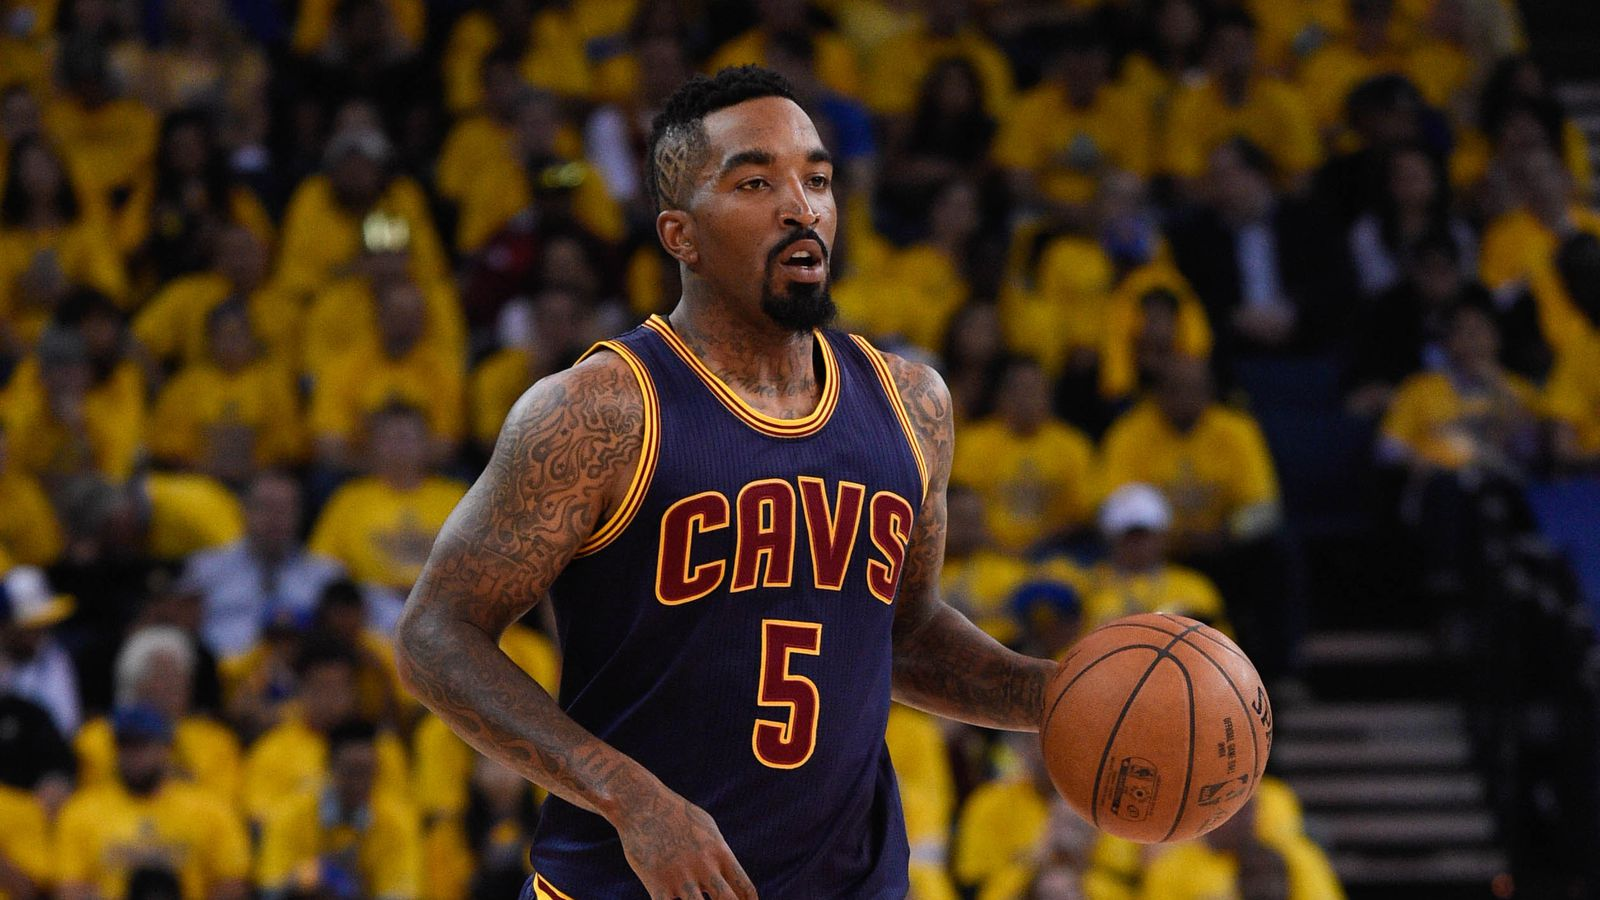 What's going on with J.R. Smith?